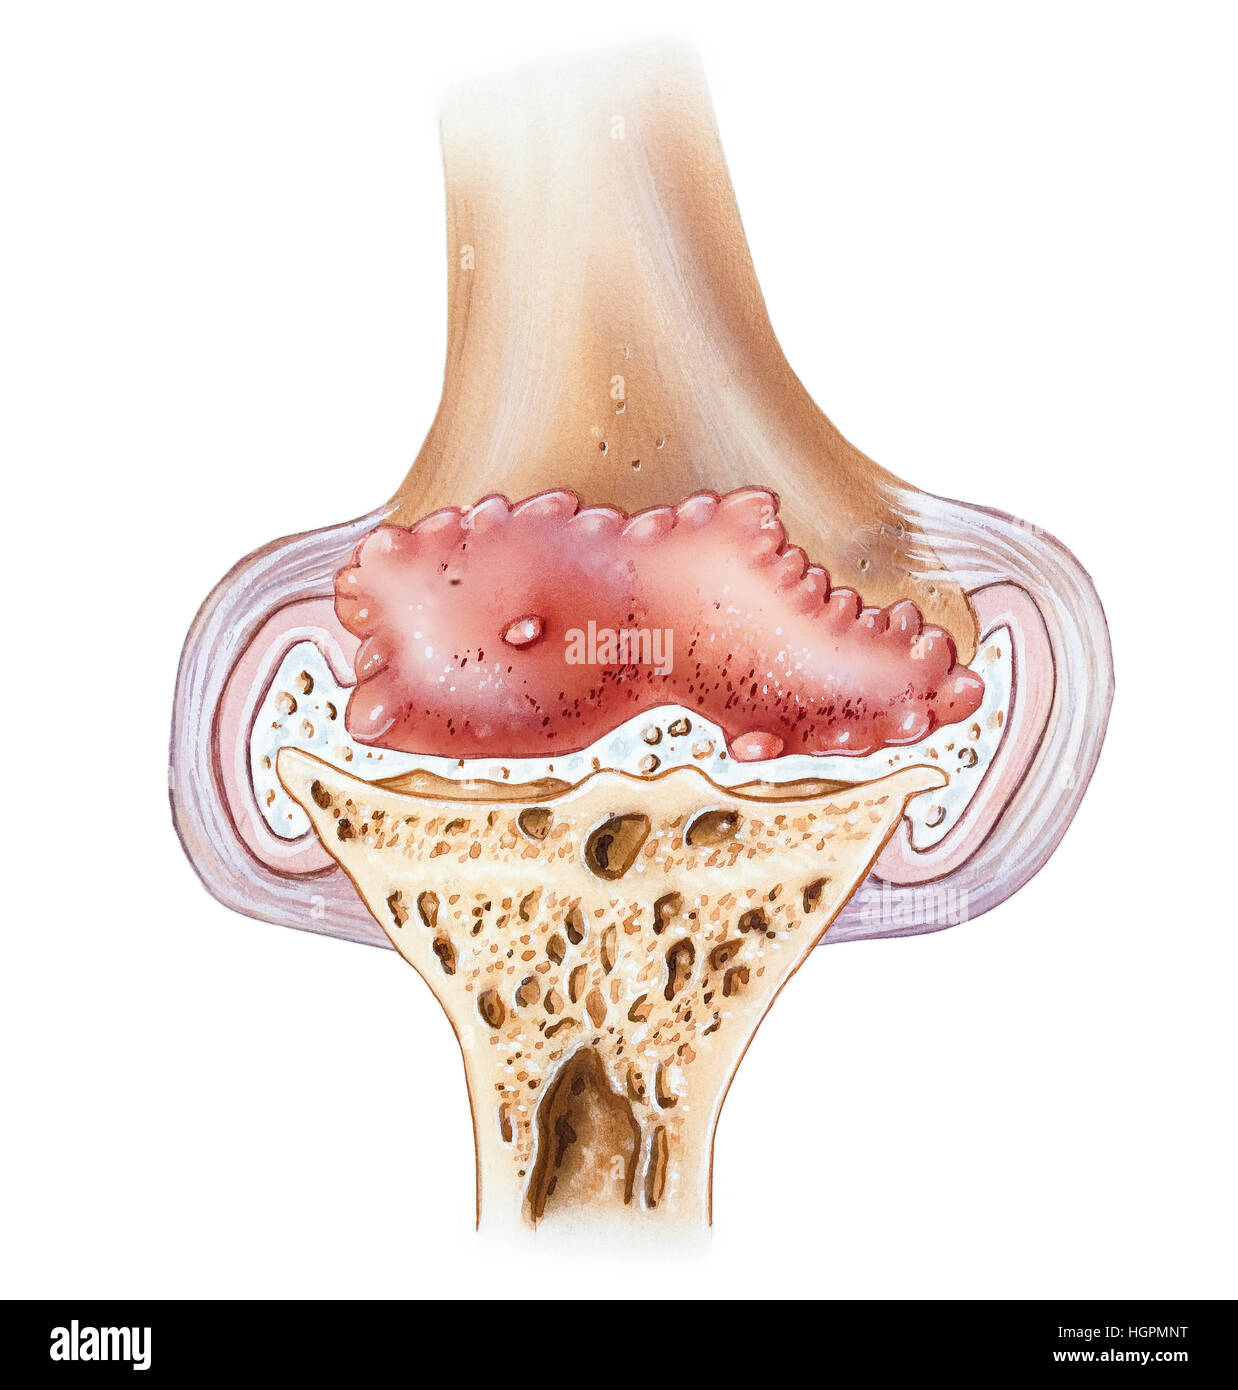 Lateral Capsular Ligament Stock Photos & Lateral Capsular Ligament ...